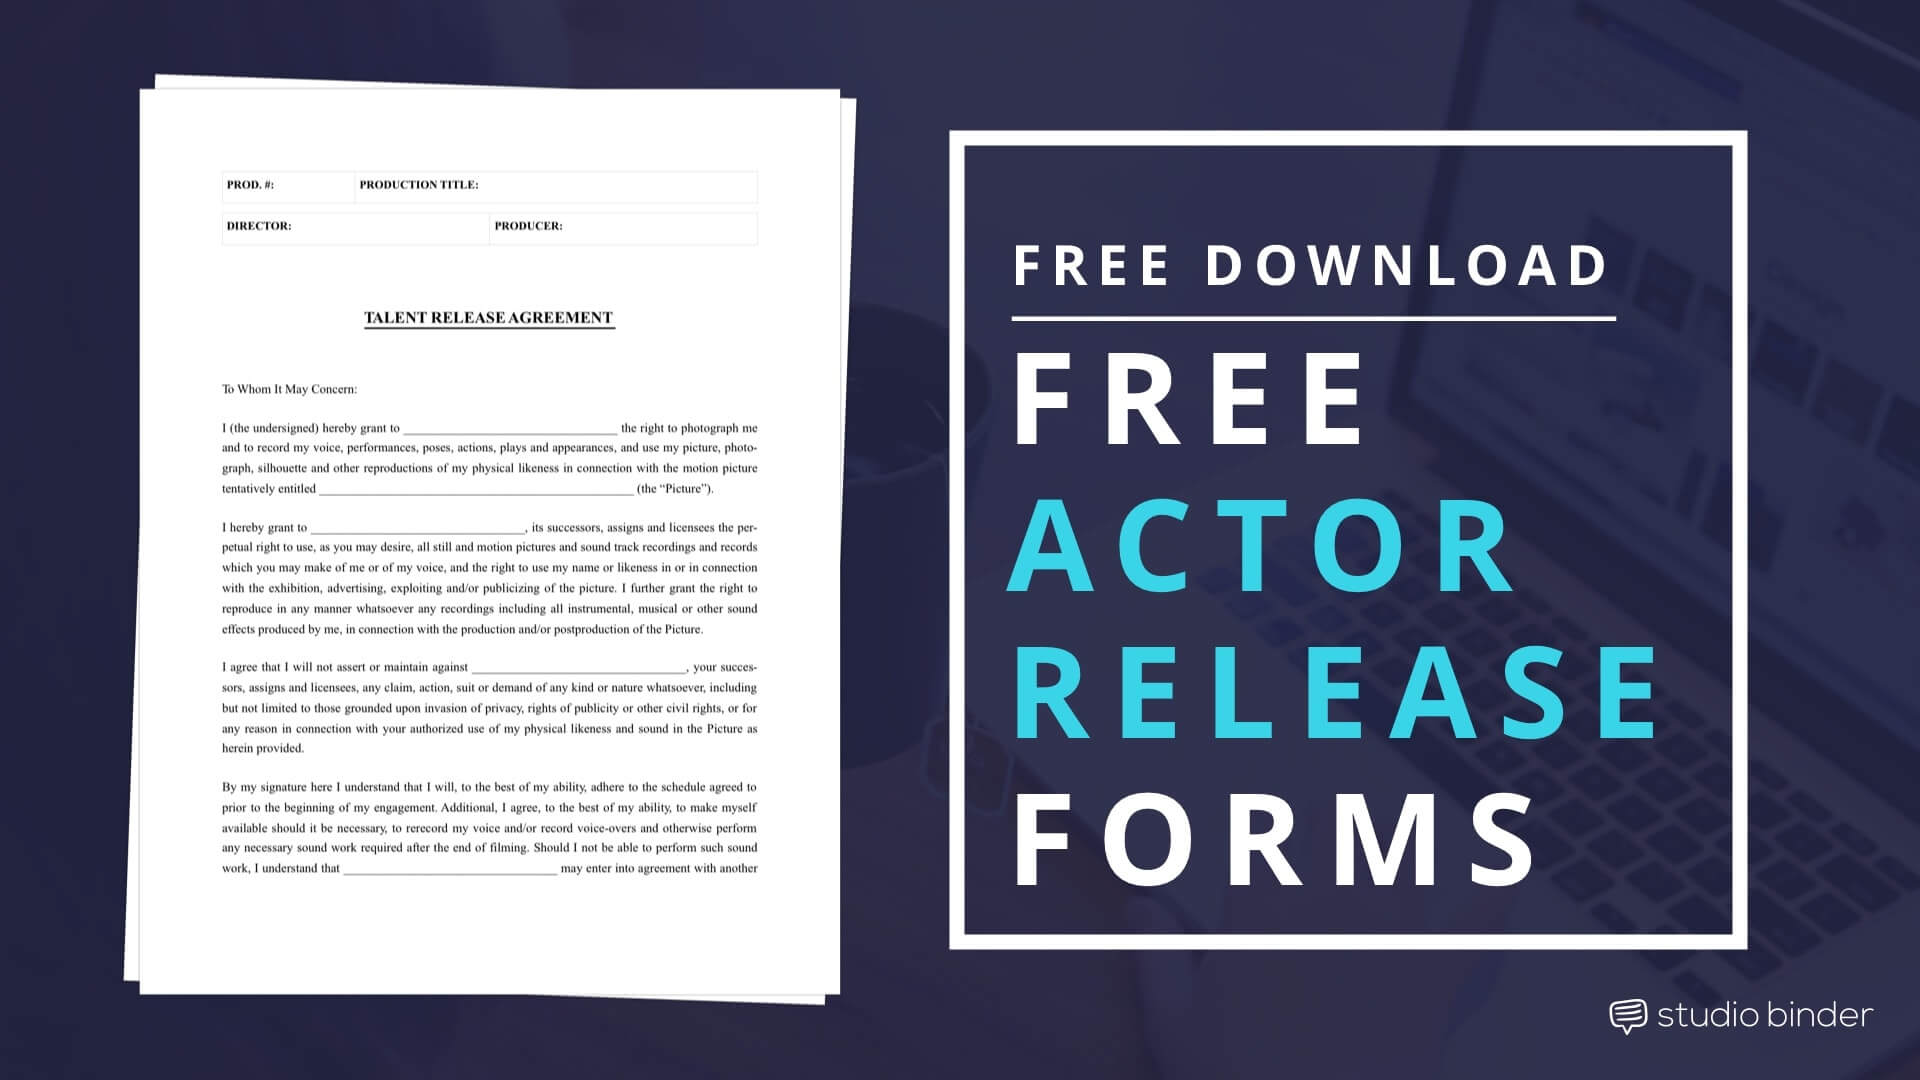 Download a Film Actor Release Form Template, FREE